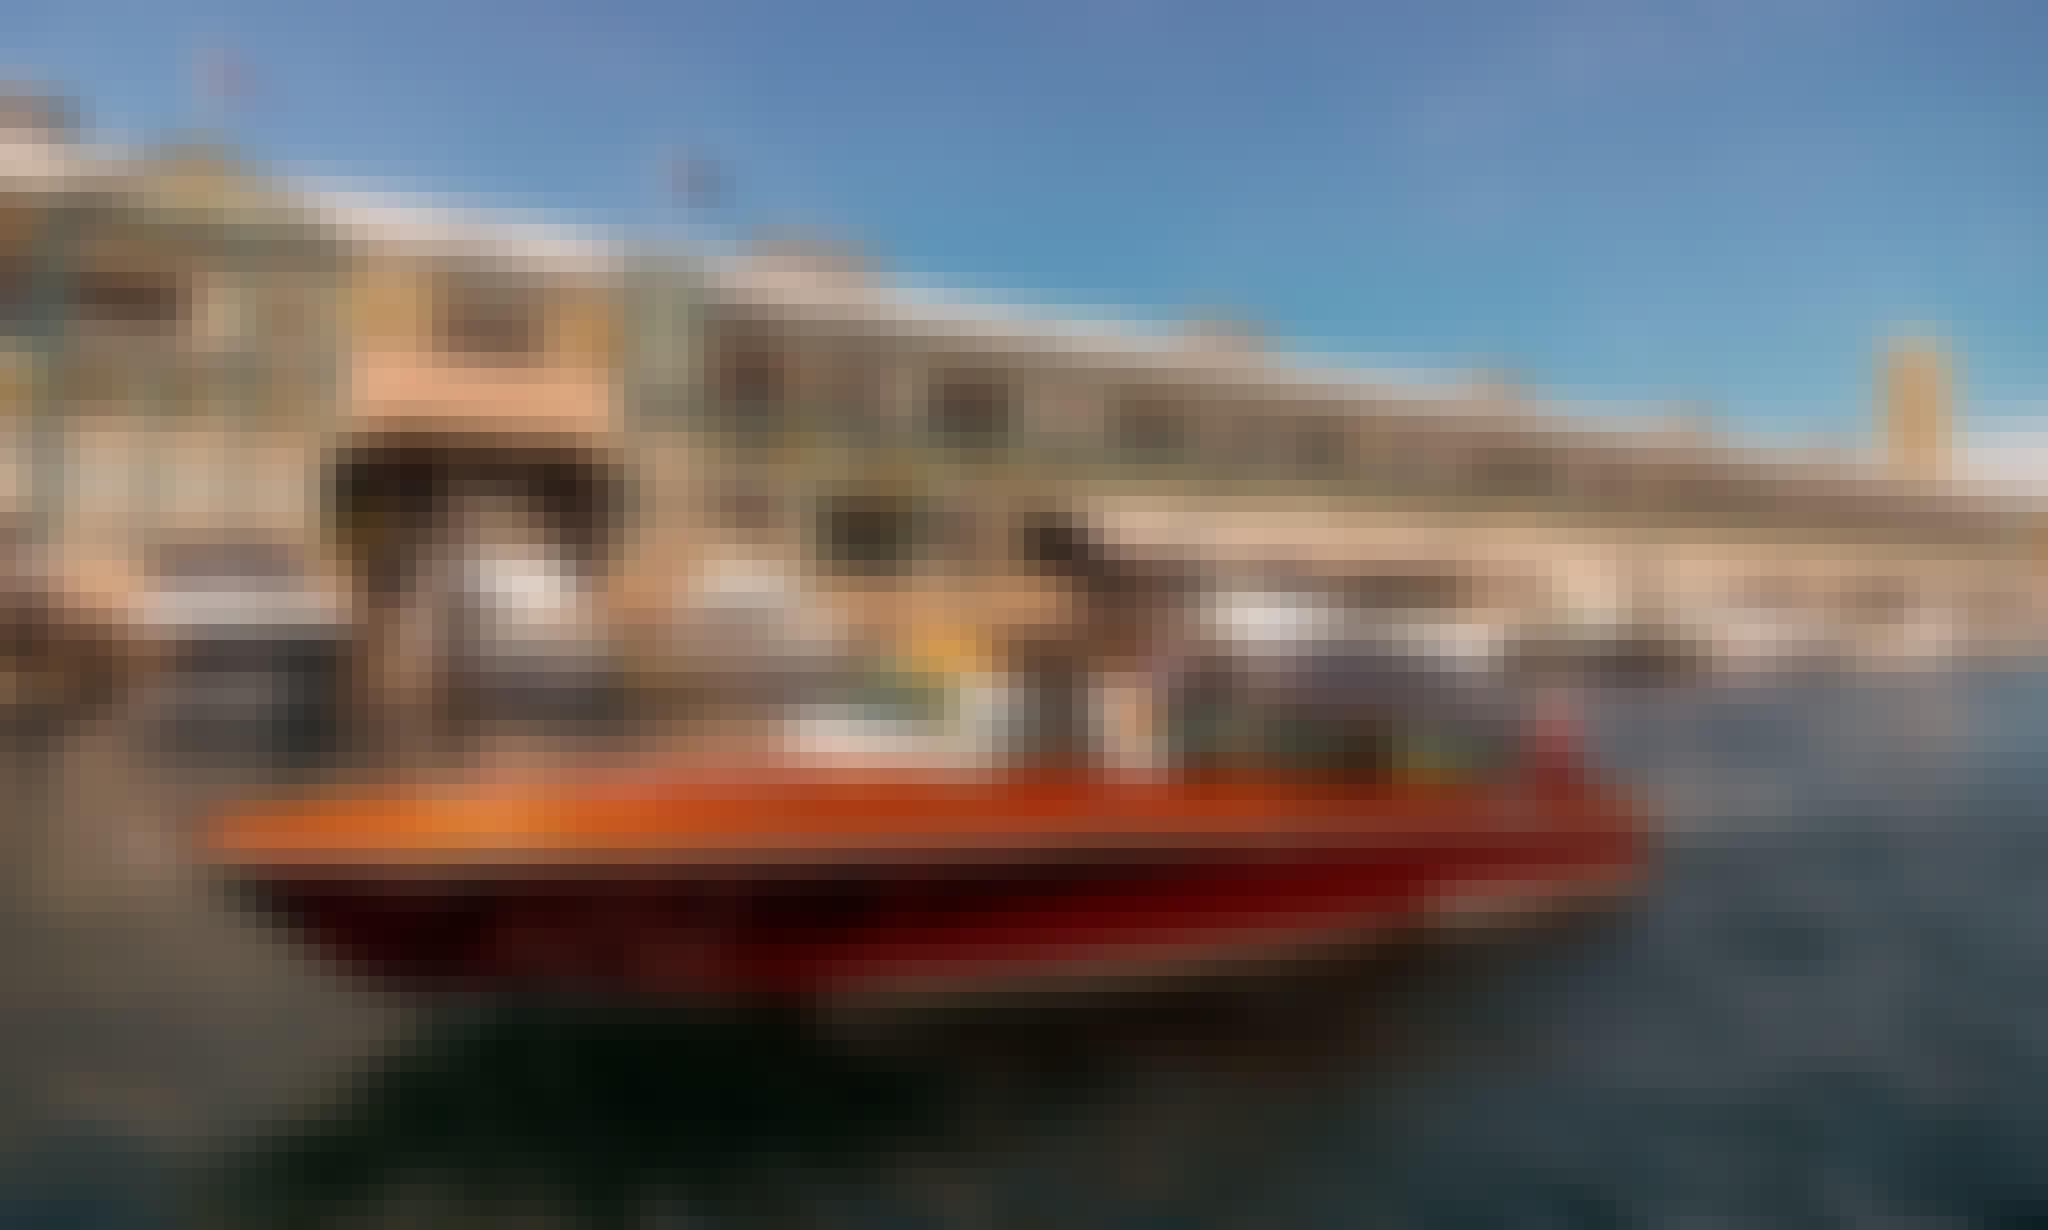 Private Sydney Luxury Cruise onboard 28' Bel Motor Yacht for 6 People!